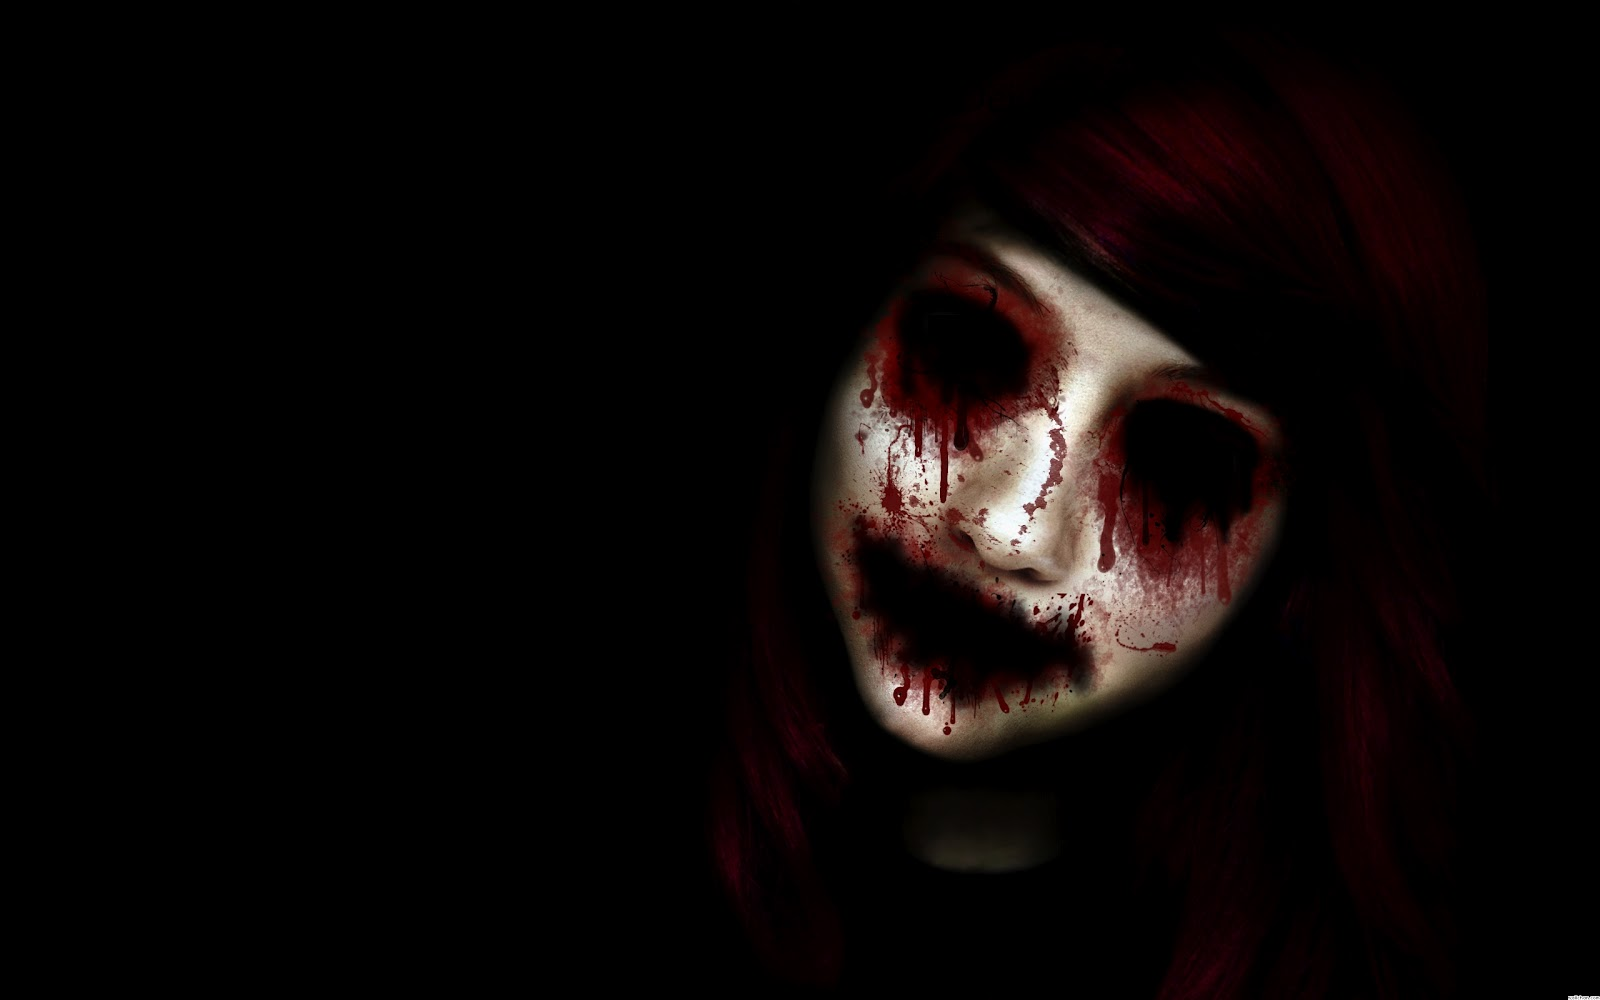 the bizarre and weird bizarre creepy scary girl photos